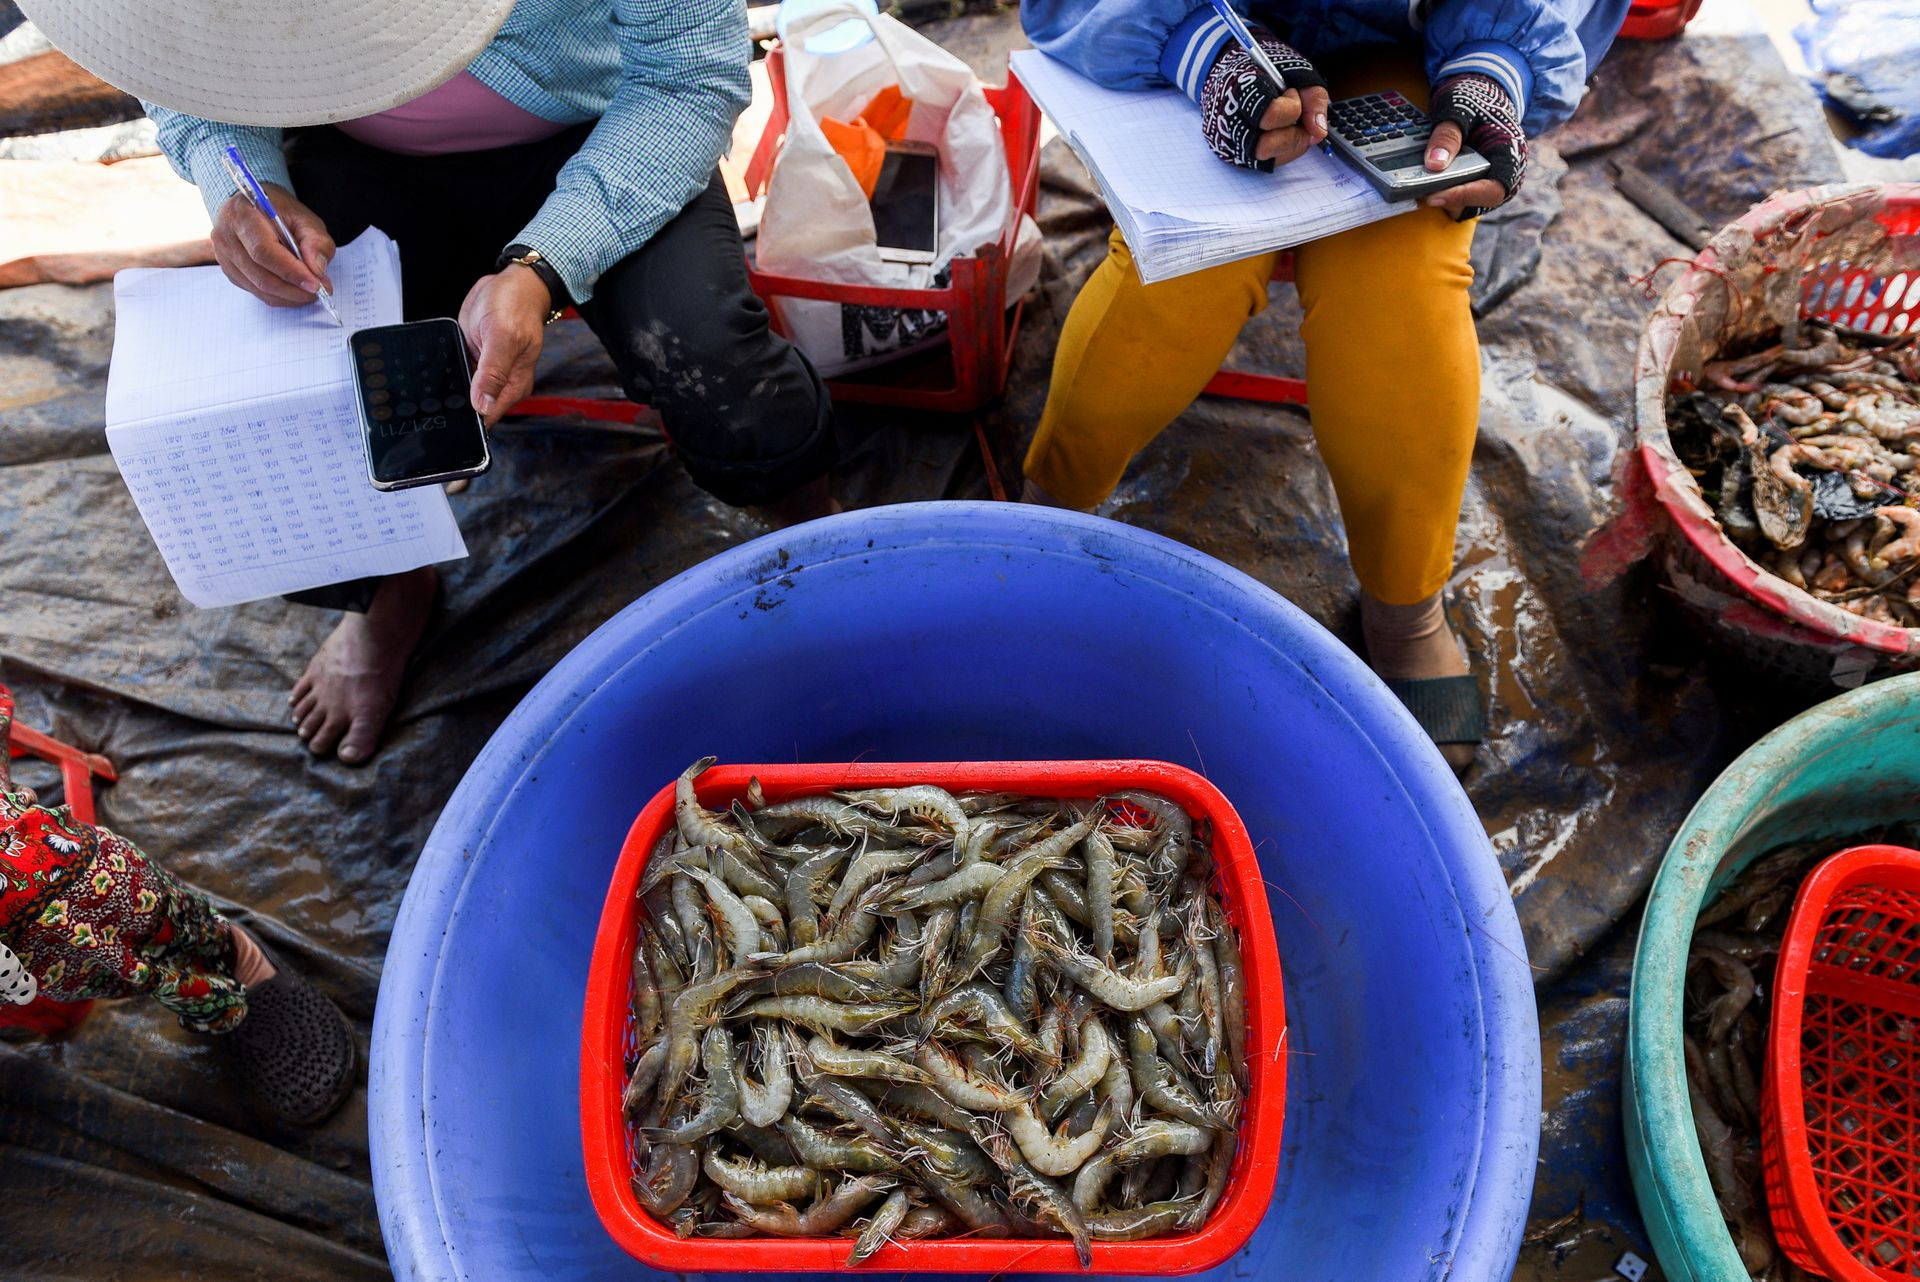 Shrimp farmers weigh harvested shrimps in Soc Trang Province, Vietnam, April 27, 2021. Photo by Reuters/Thanh Hue.